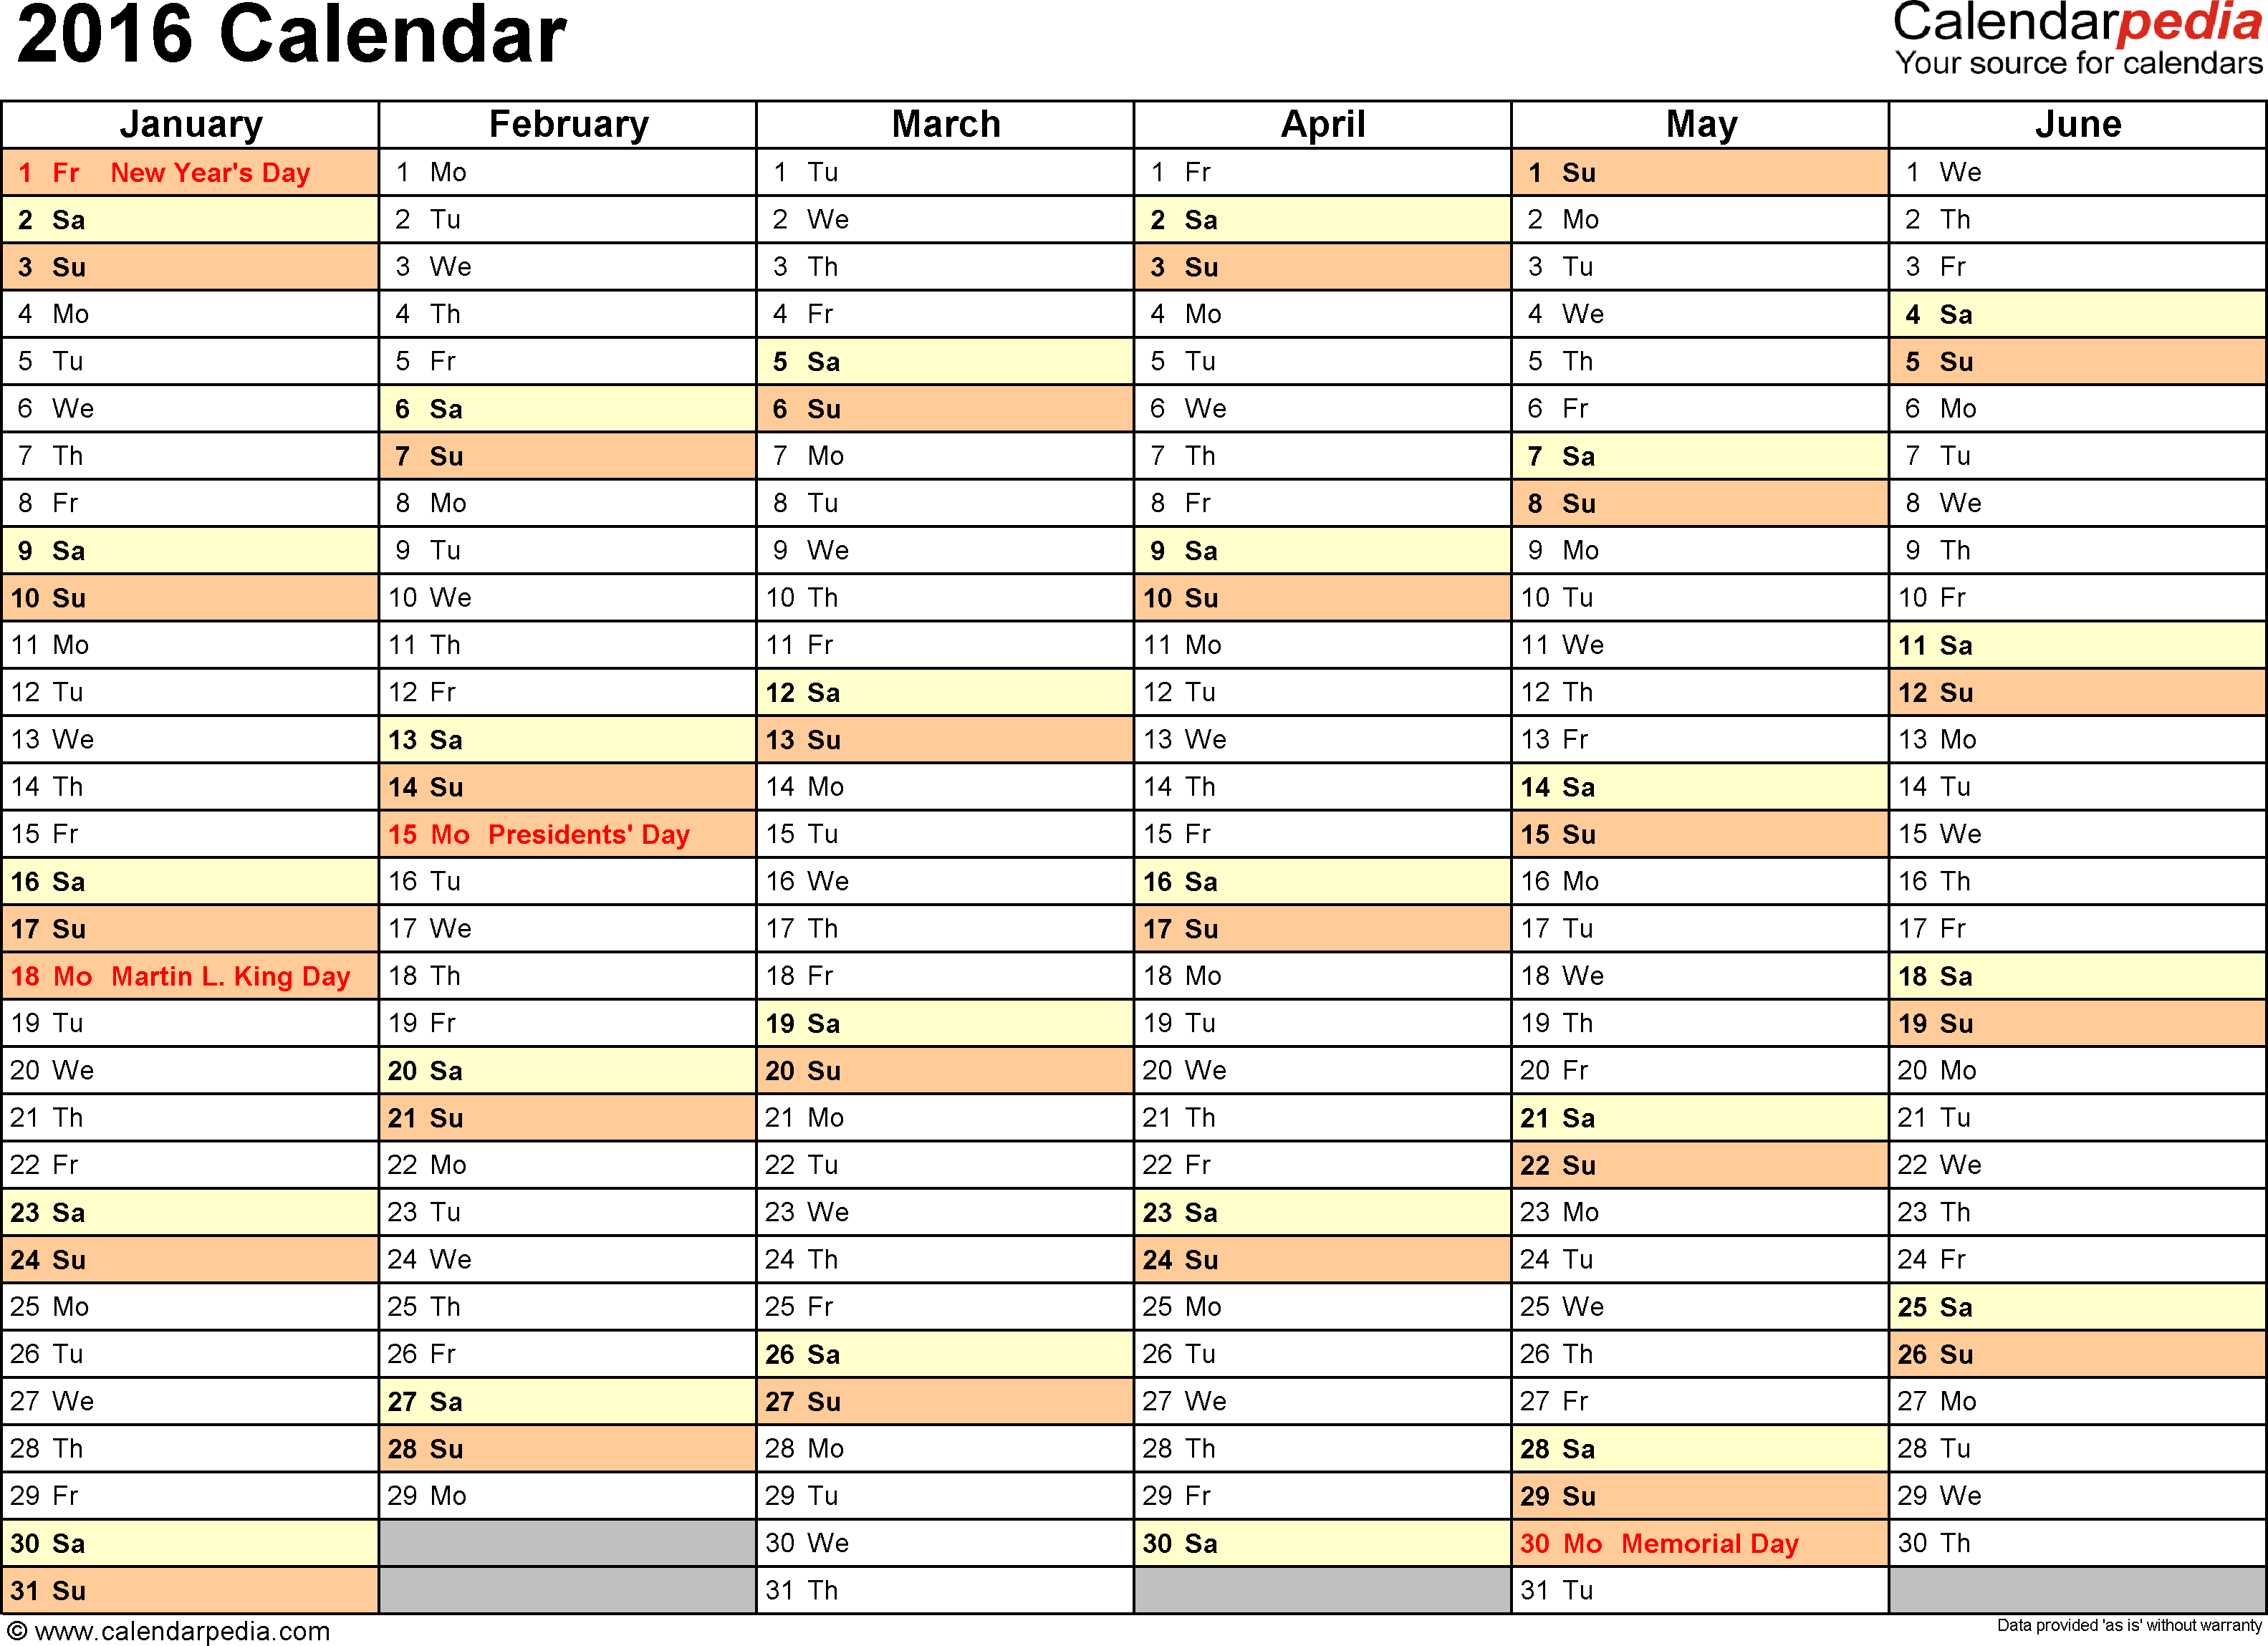 Ediblewildsus  Sweet  Calendar  Download  Free Printable Excel Templates Xls With Excellent Template   Calendar For Excel Months Horizontally  Pages Landscape Orientation With Extraordinary Excel Label Template Also Excel Workshops In Addition Excel  Compatibility Mode And Excel Task List As Well As How To Convert Number To Text In Excel Additionally Excel Add Text To Formula From Calendarpediacom With Ediblewildsus  Excellent  Calendar  Download  Free Printable Excel Templates Xls With Extraordinary Template   Calendar For Excel Months Horizontally  Pages Landscape Orientation And Sweet Excel Label Template Also Excel Workshops In Addition Excel  Compatibility Mode From Calendarpediacom